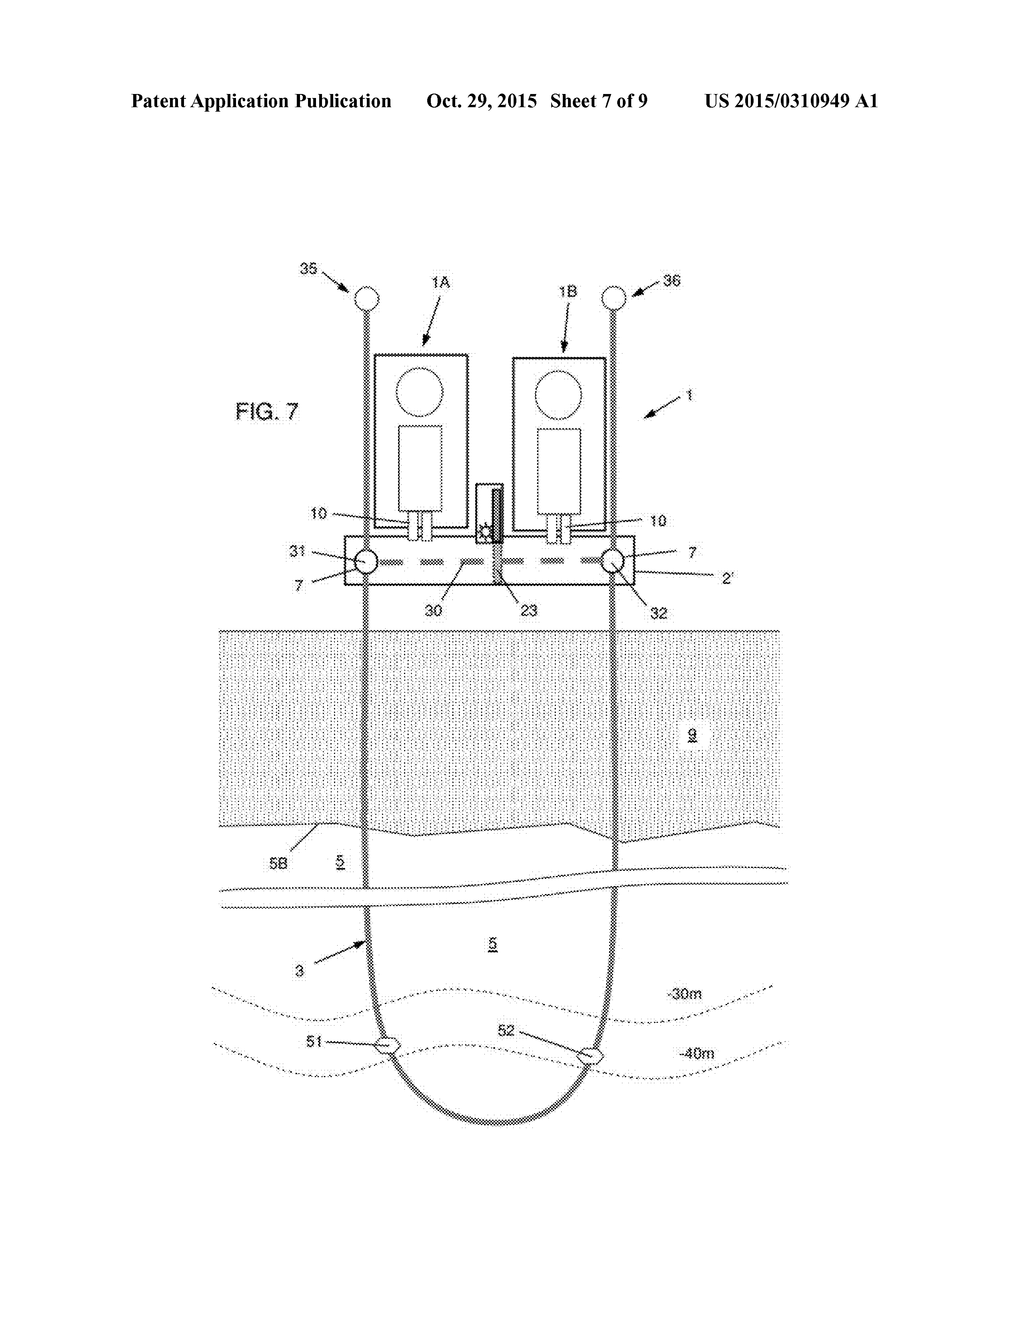 Water Intake Installation For Cooling A Nuclear Power Plant And Diagram Pictures Comprising Such An Schematic Image 08